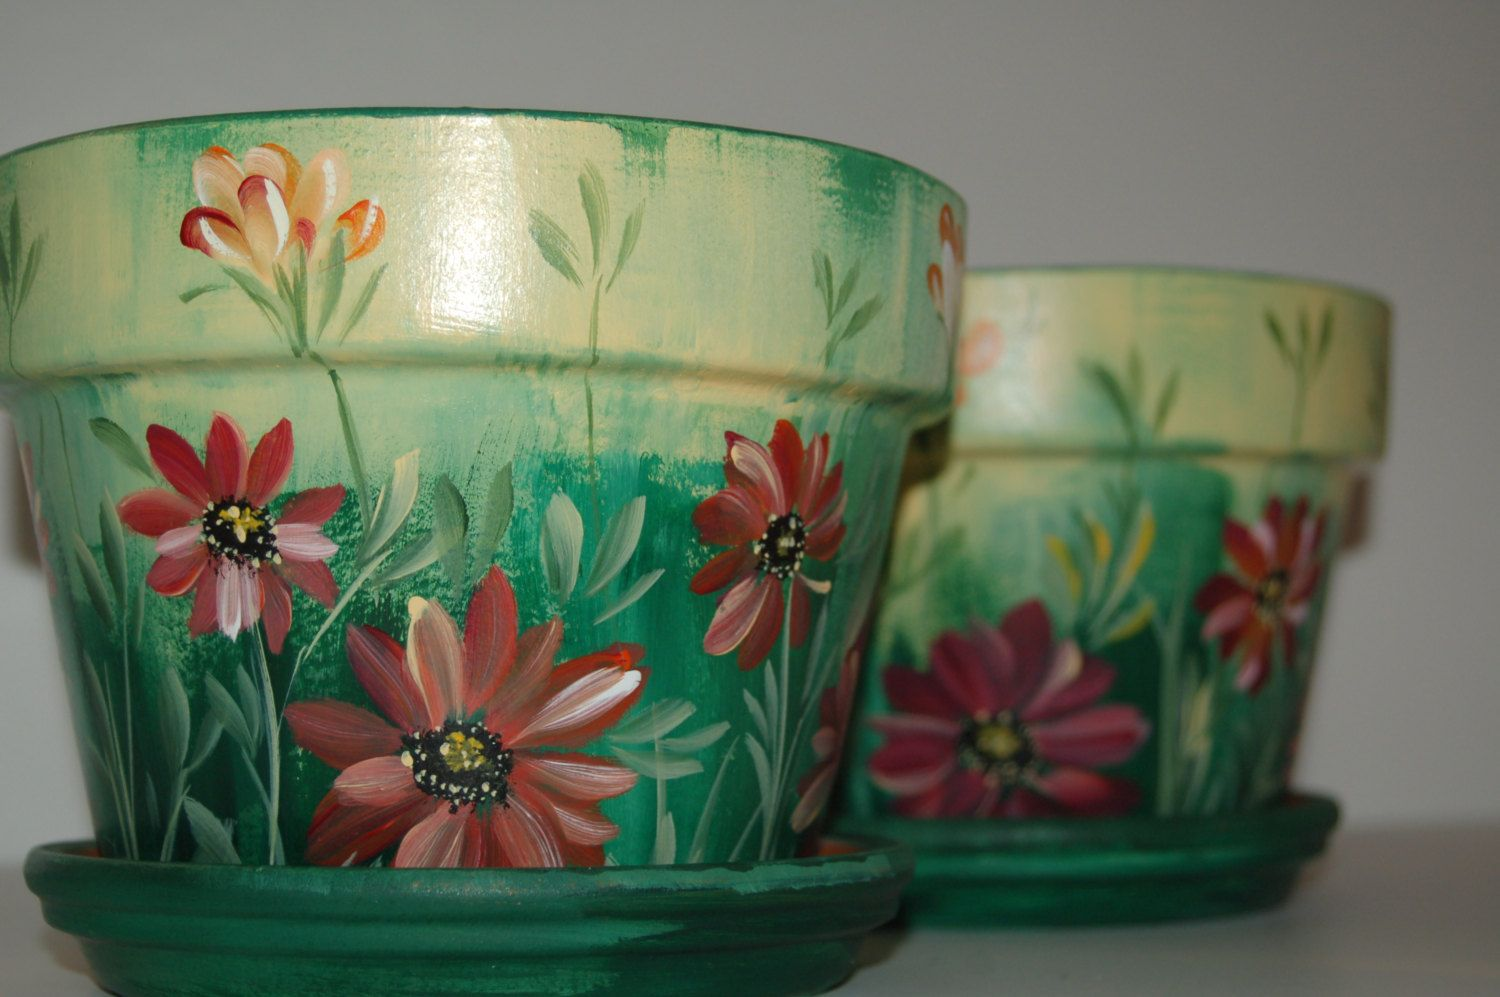 Free Images To Paint On Clay Pots Hand Painted 4 Flower Pots Macetas Pintadas Macetas Decoradas Ideas De Maceta